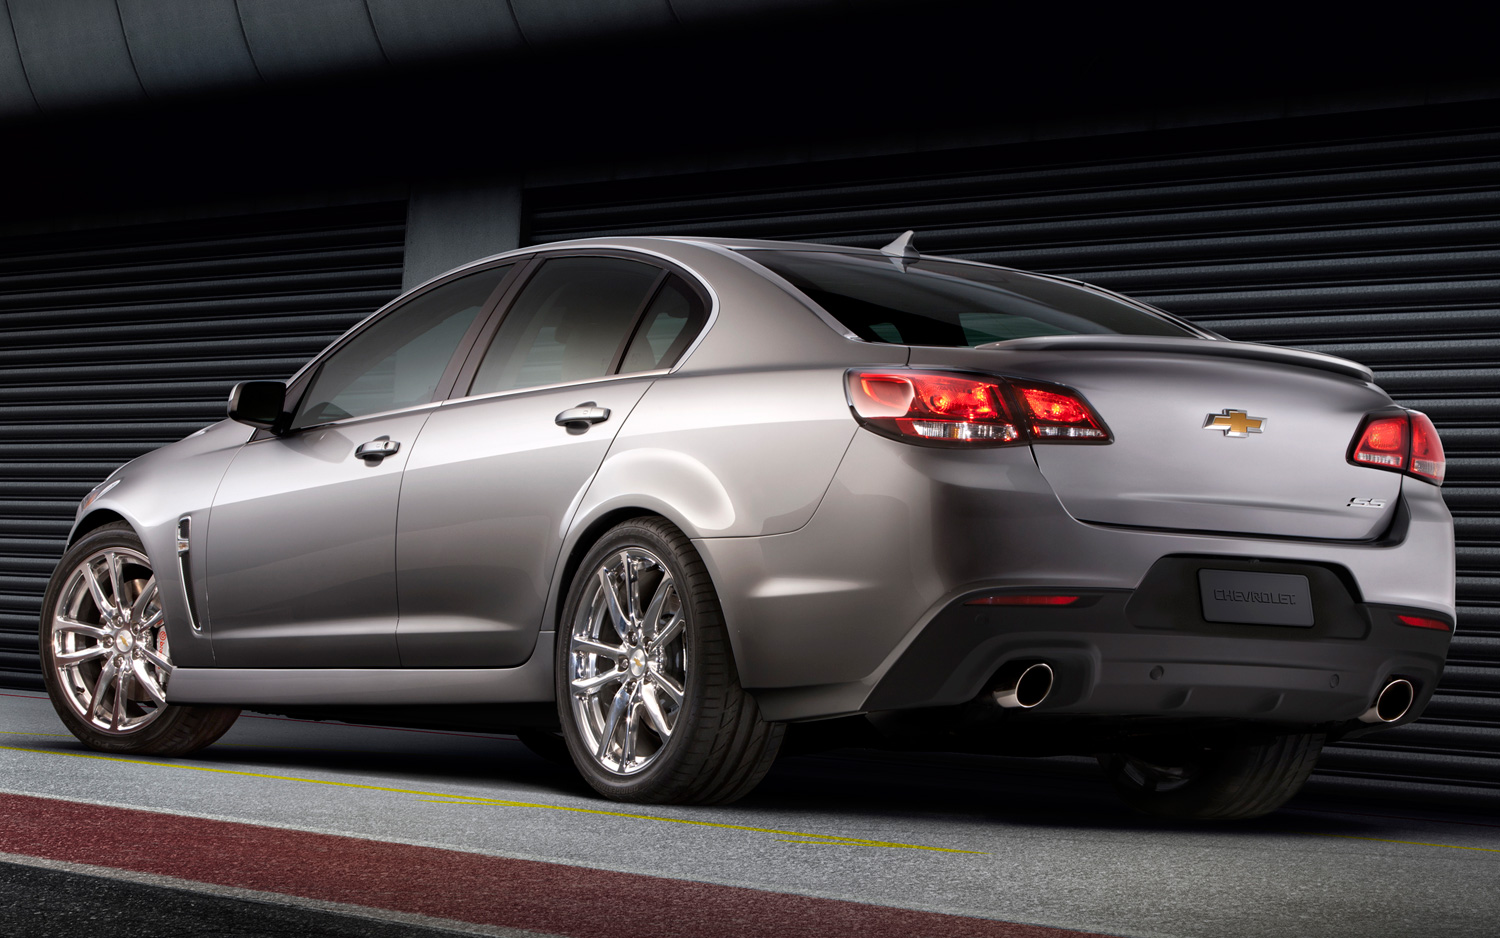 2010 Chevrolet Malibu Owners Manual >> 2014 Chevrolet SS | New cars reviews